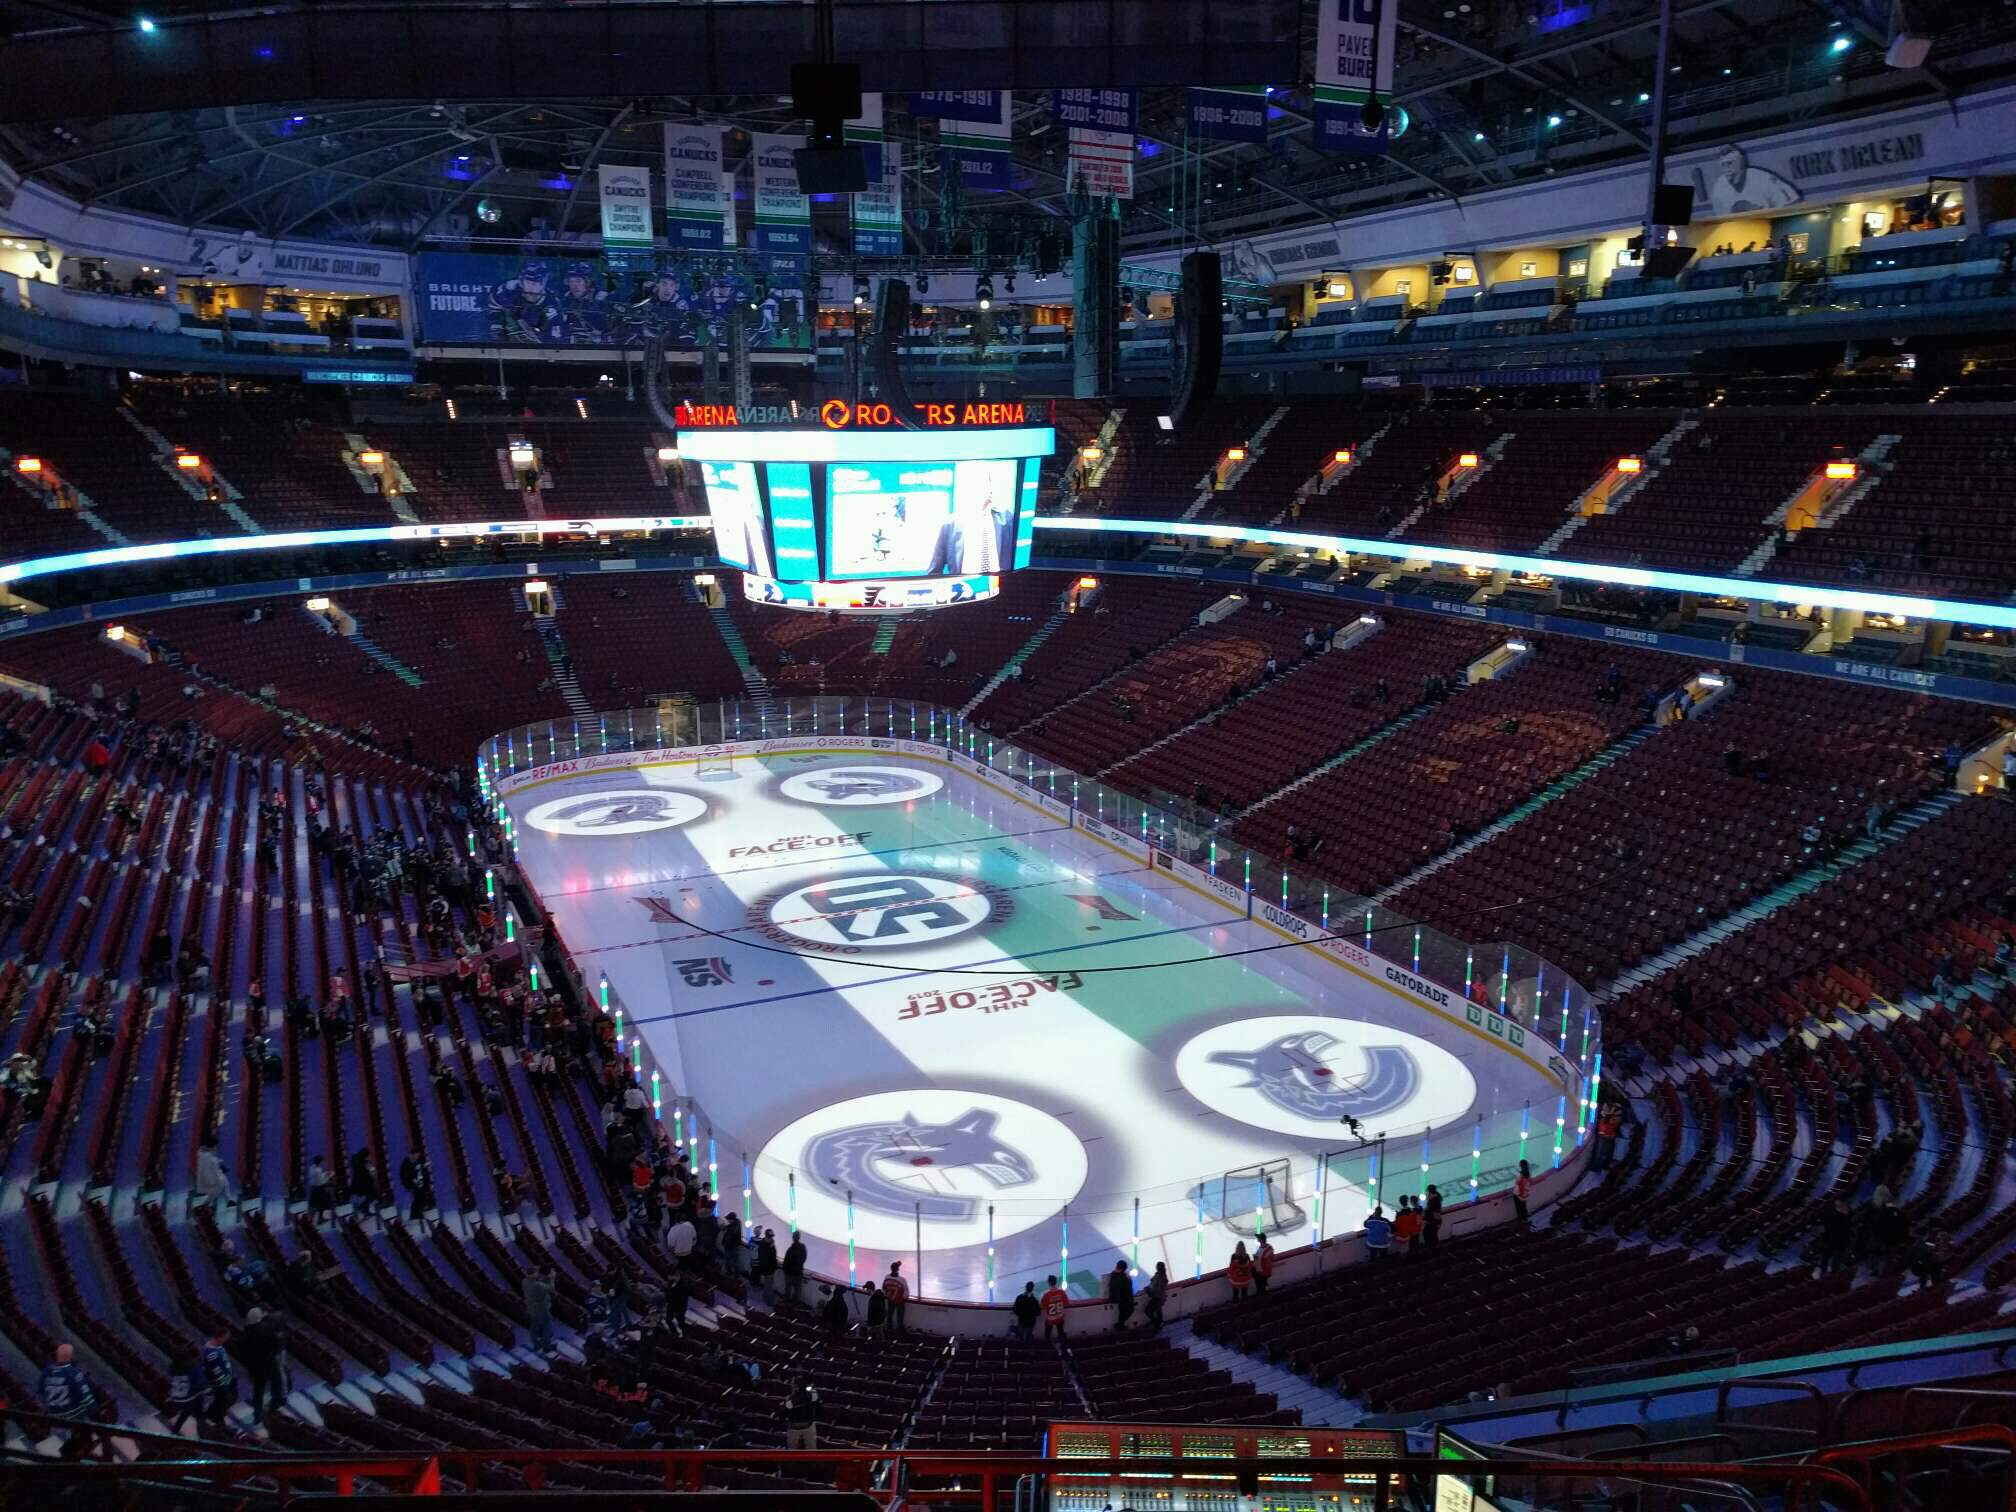 Rogers Arena Section 317 Row 11 Seat 110